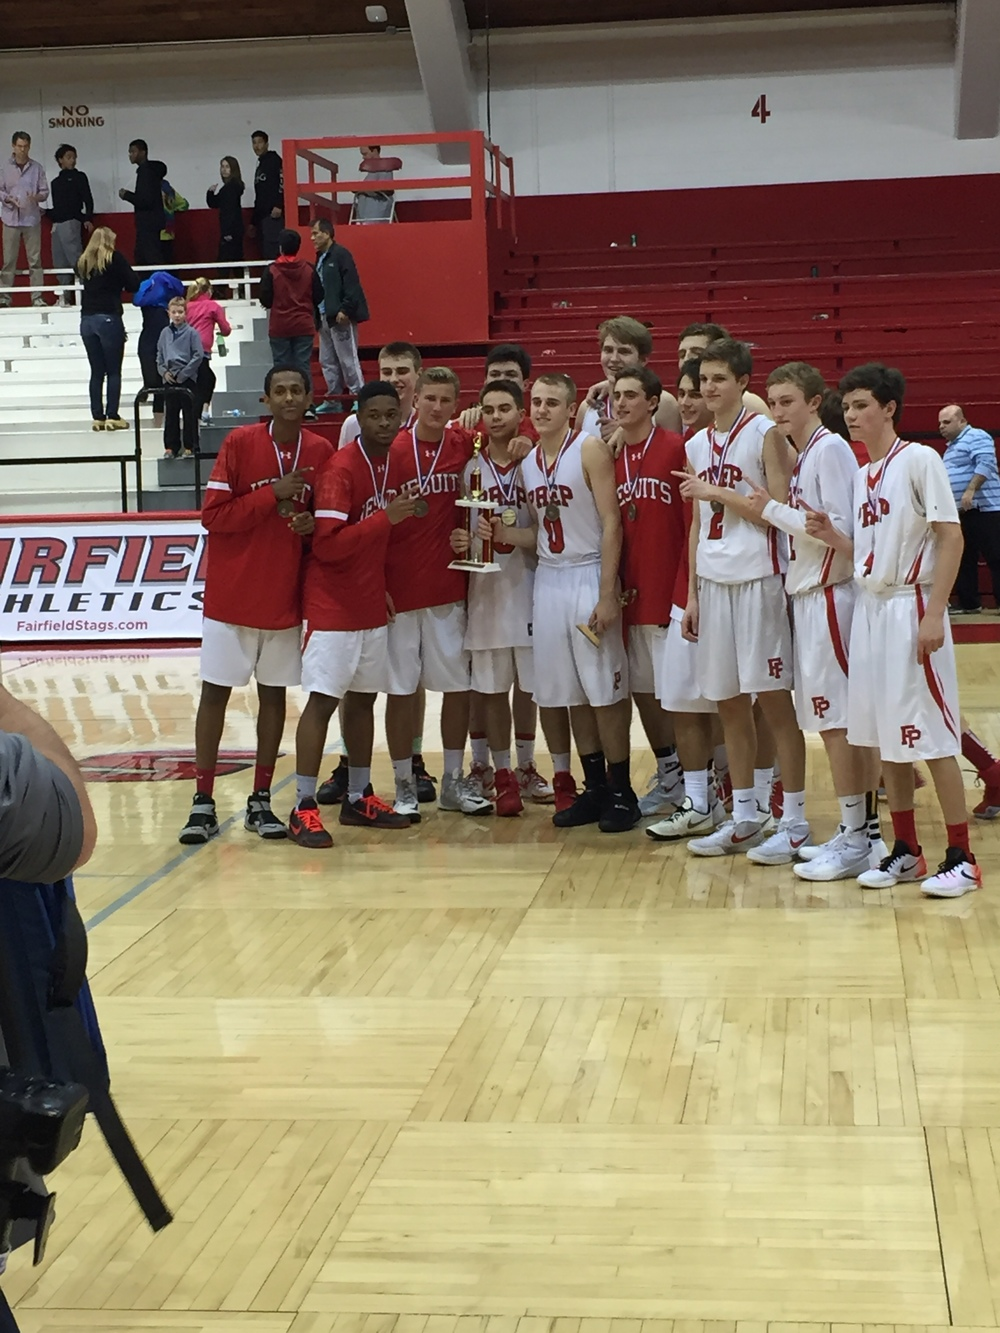 2015 Fairfield Prep Holiday Classic Champions. Provided by: CTHoopsNews